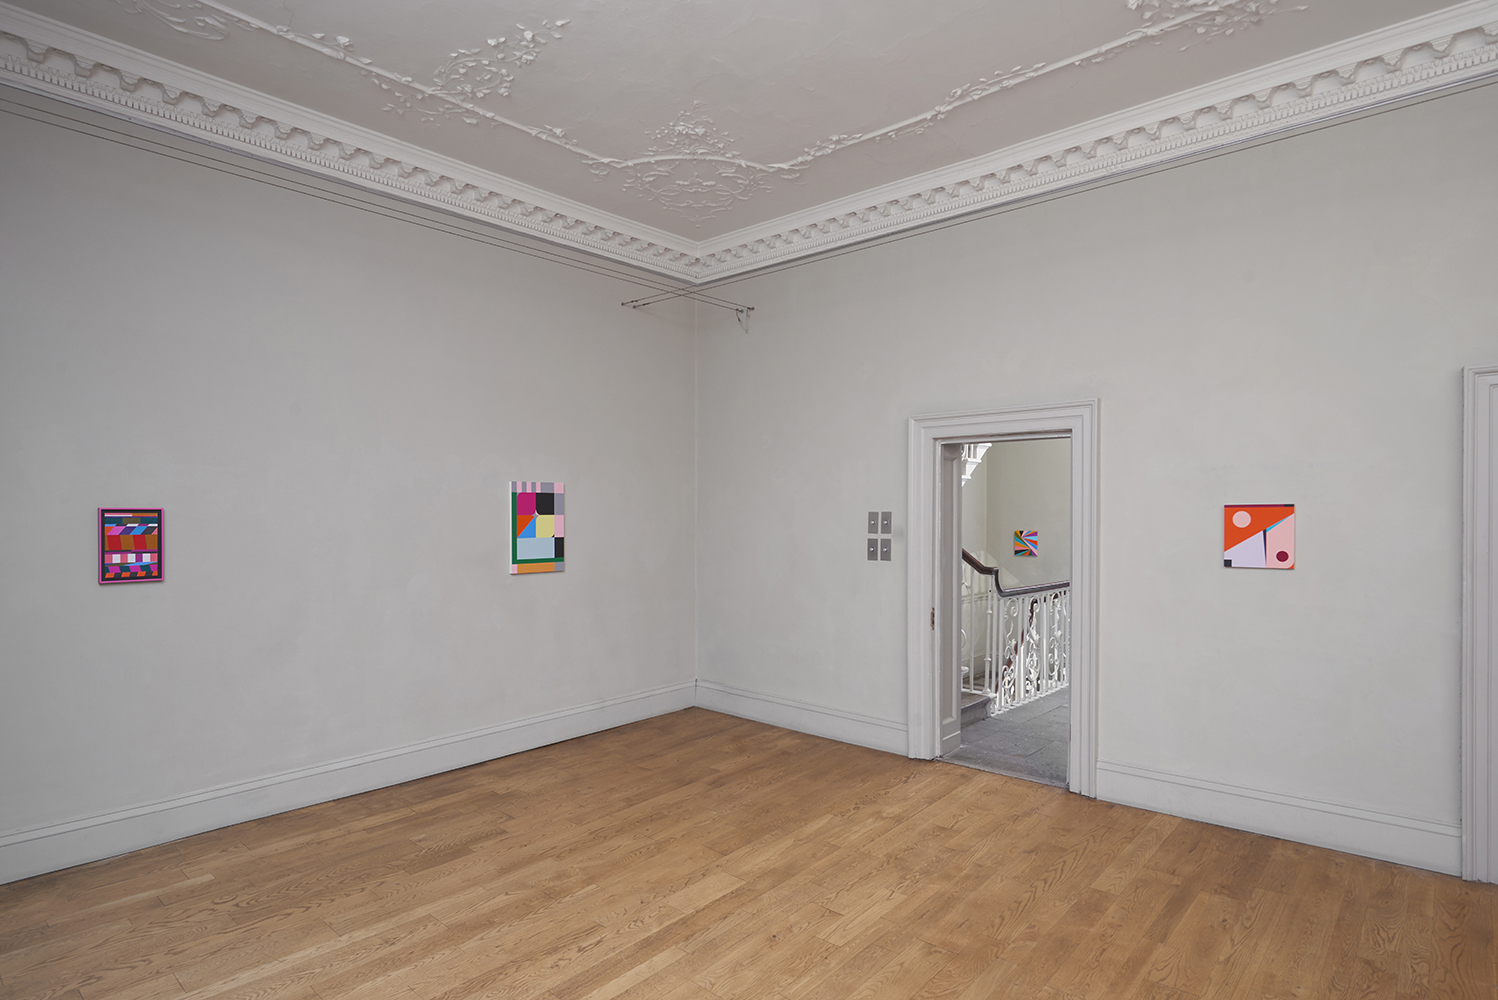 image: Lothar Götz 'Salvation' installation view, photo by Andy Keate